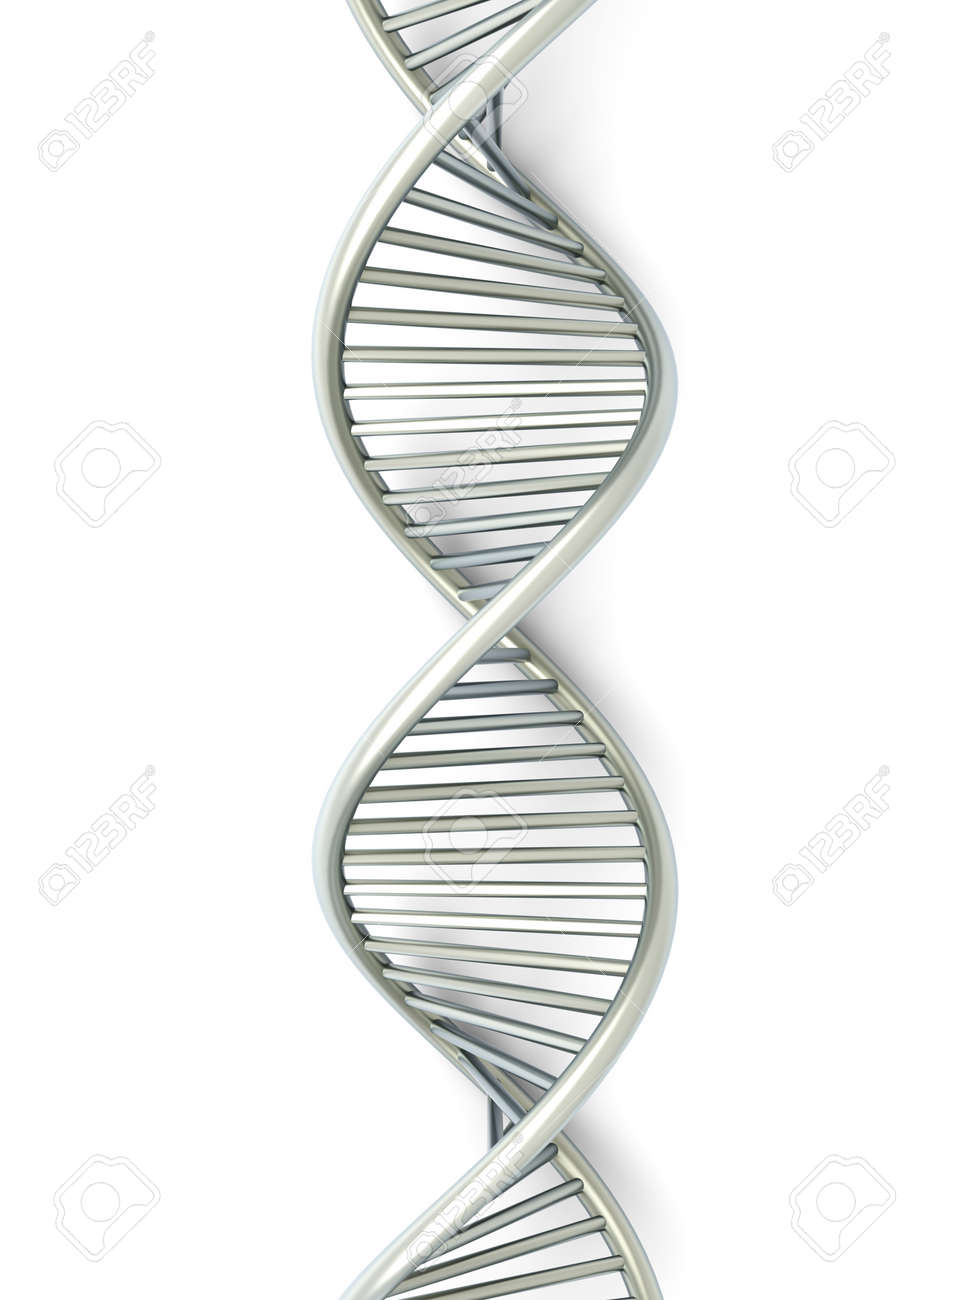 A symbolic DNA model. 3D rendered illustration. Isolated on white. Stock Photo - 10126976